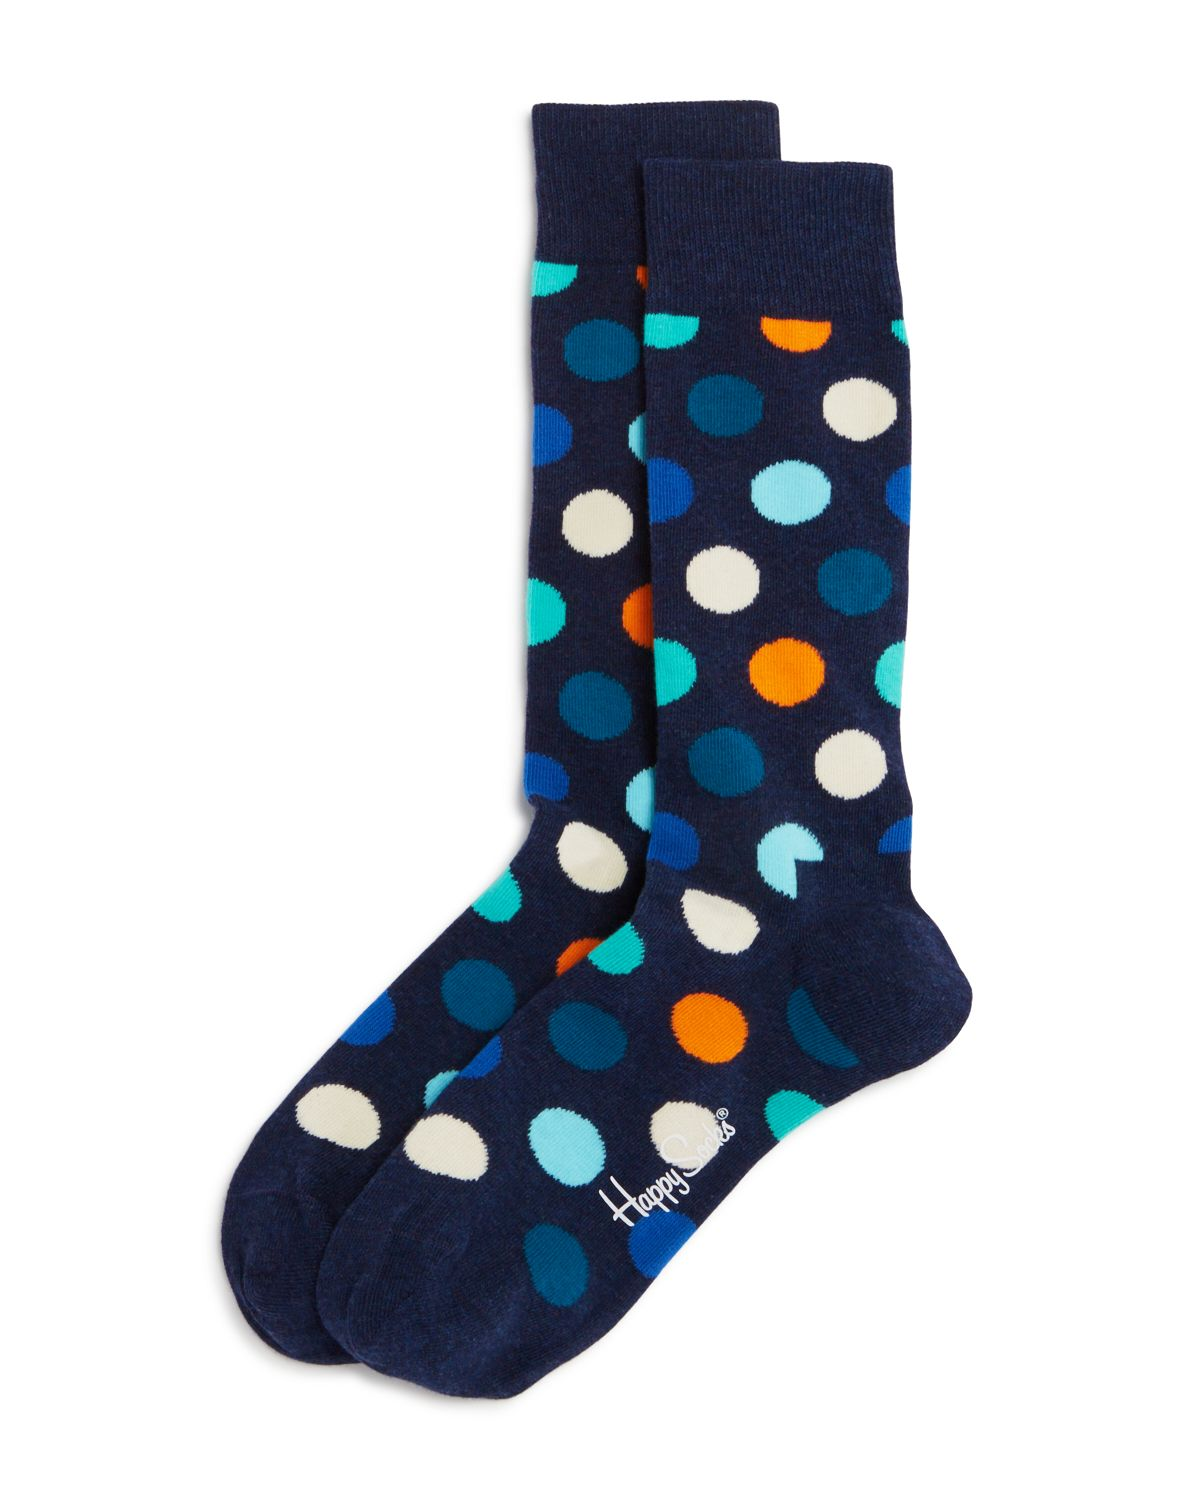 Happy Socks Big Dot Socks Blue Multi